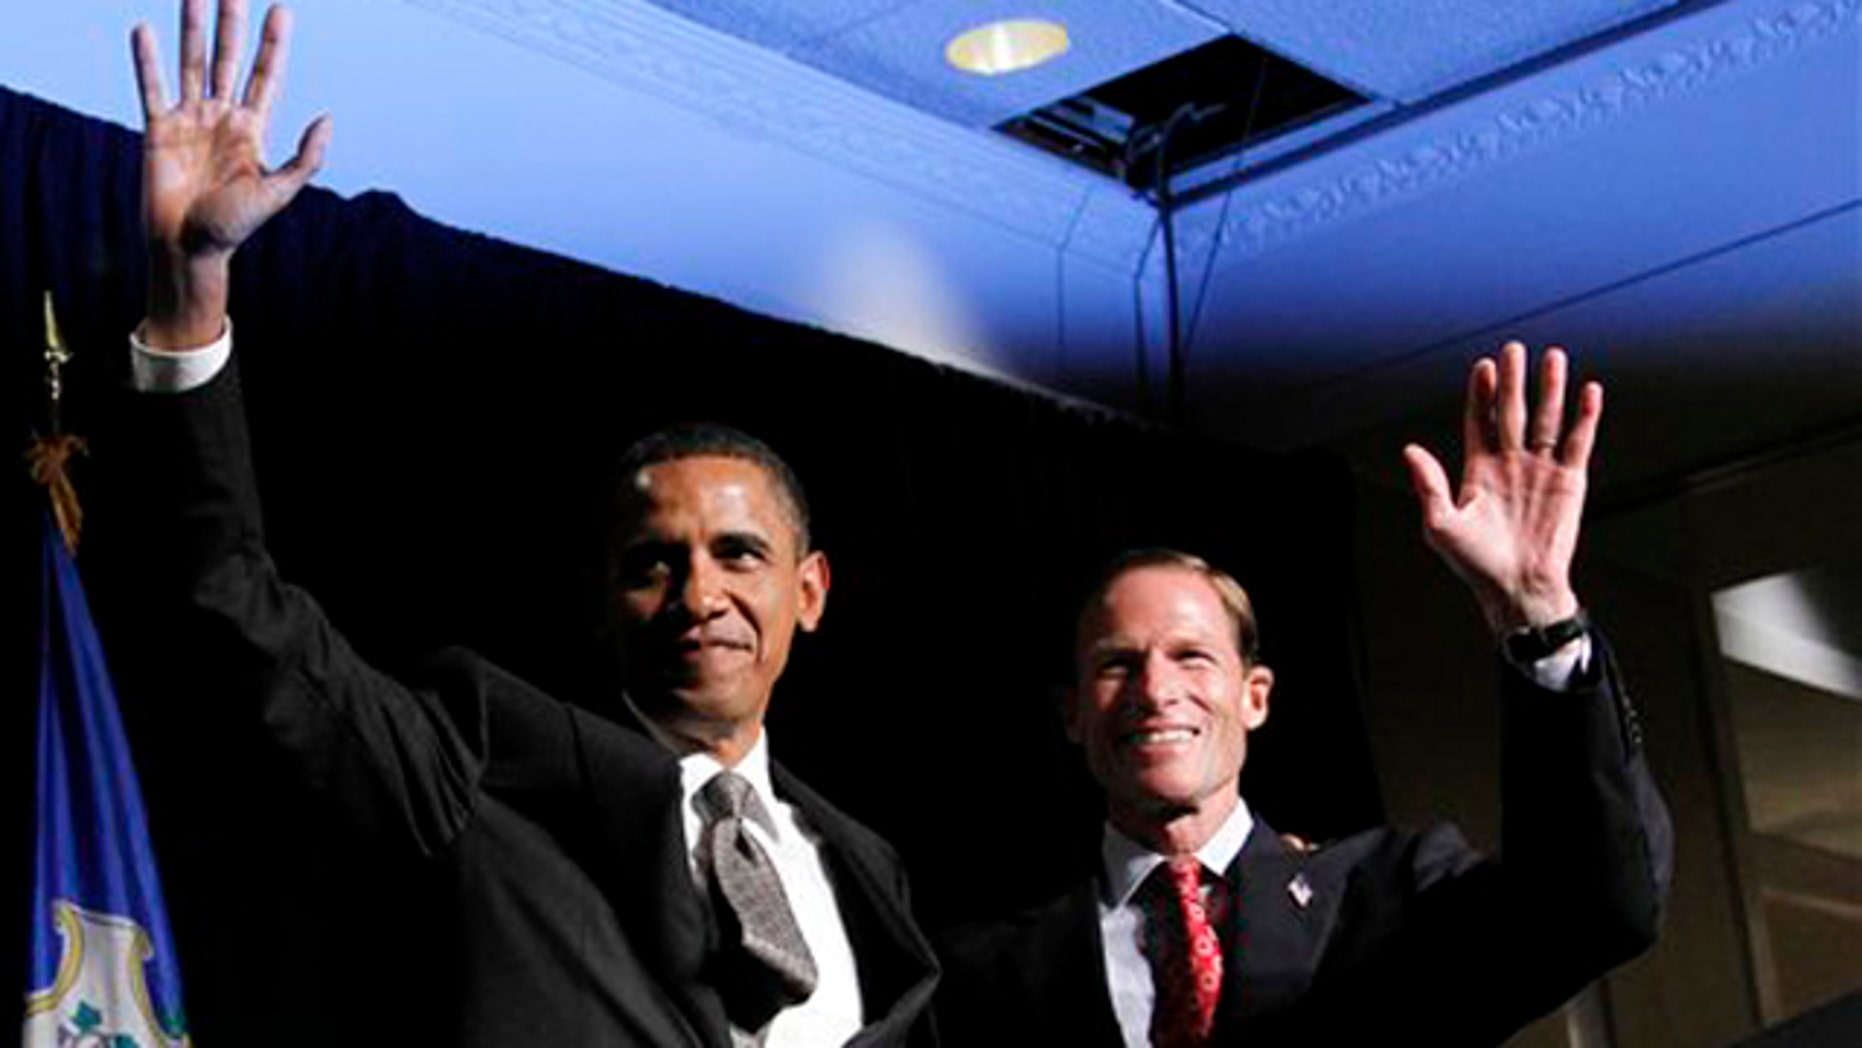 Sept. 16, 2010: President Barack Obama, left, with Connecticut Attorney General and Democrat candidate for US Senate Richard Blumental, right, wave during a fundraiser in Stamford, Conn.. Blumenthal is running in the Nov. 2 general election to fill the seat being vacated by the retirement of Sen. Christopher Dodd, D-Conn.